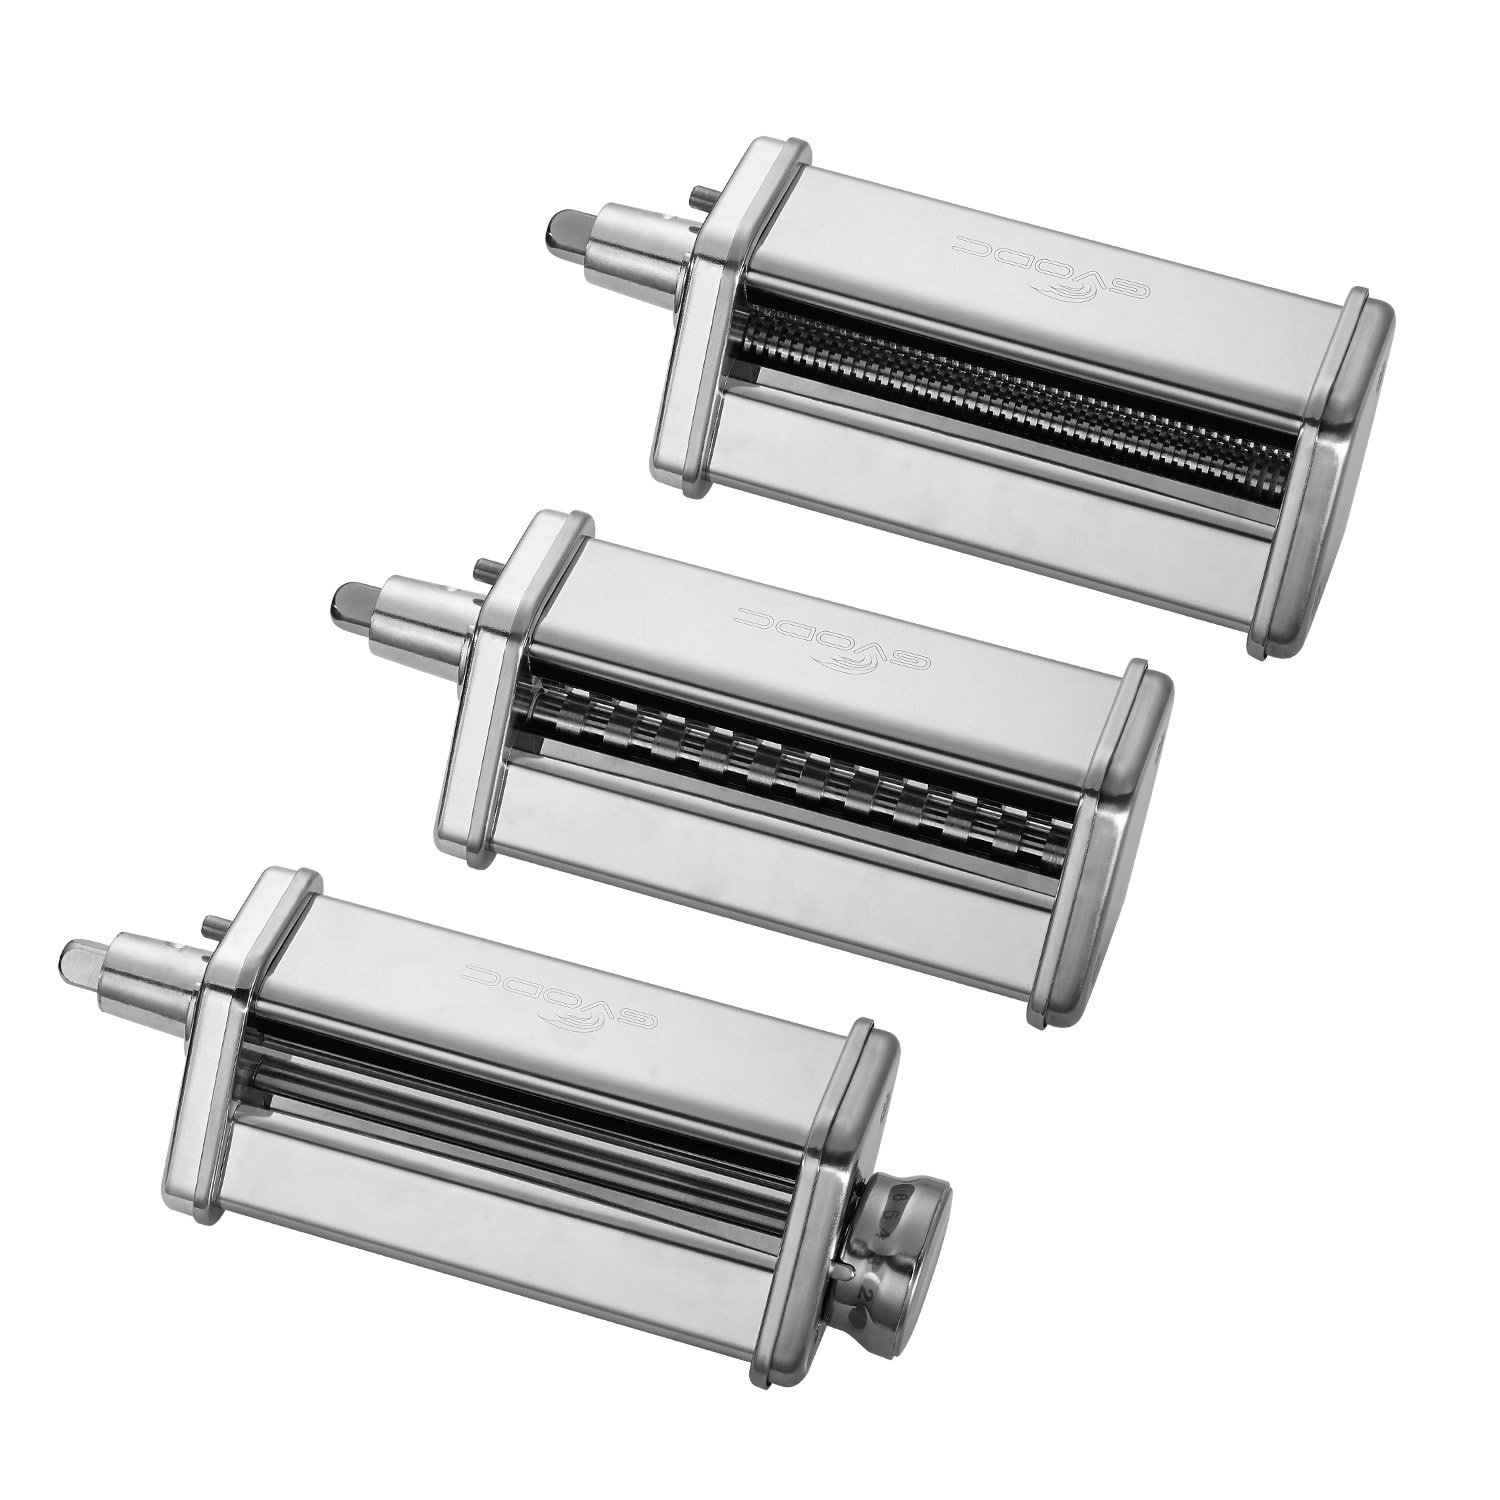 GVODE 3-Piece Pasta Roller and Cutter Set for KitchenAid Stand Mixers,Stainless Steel